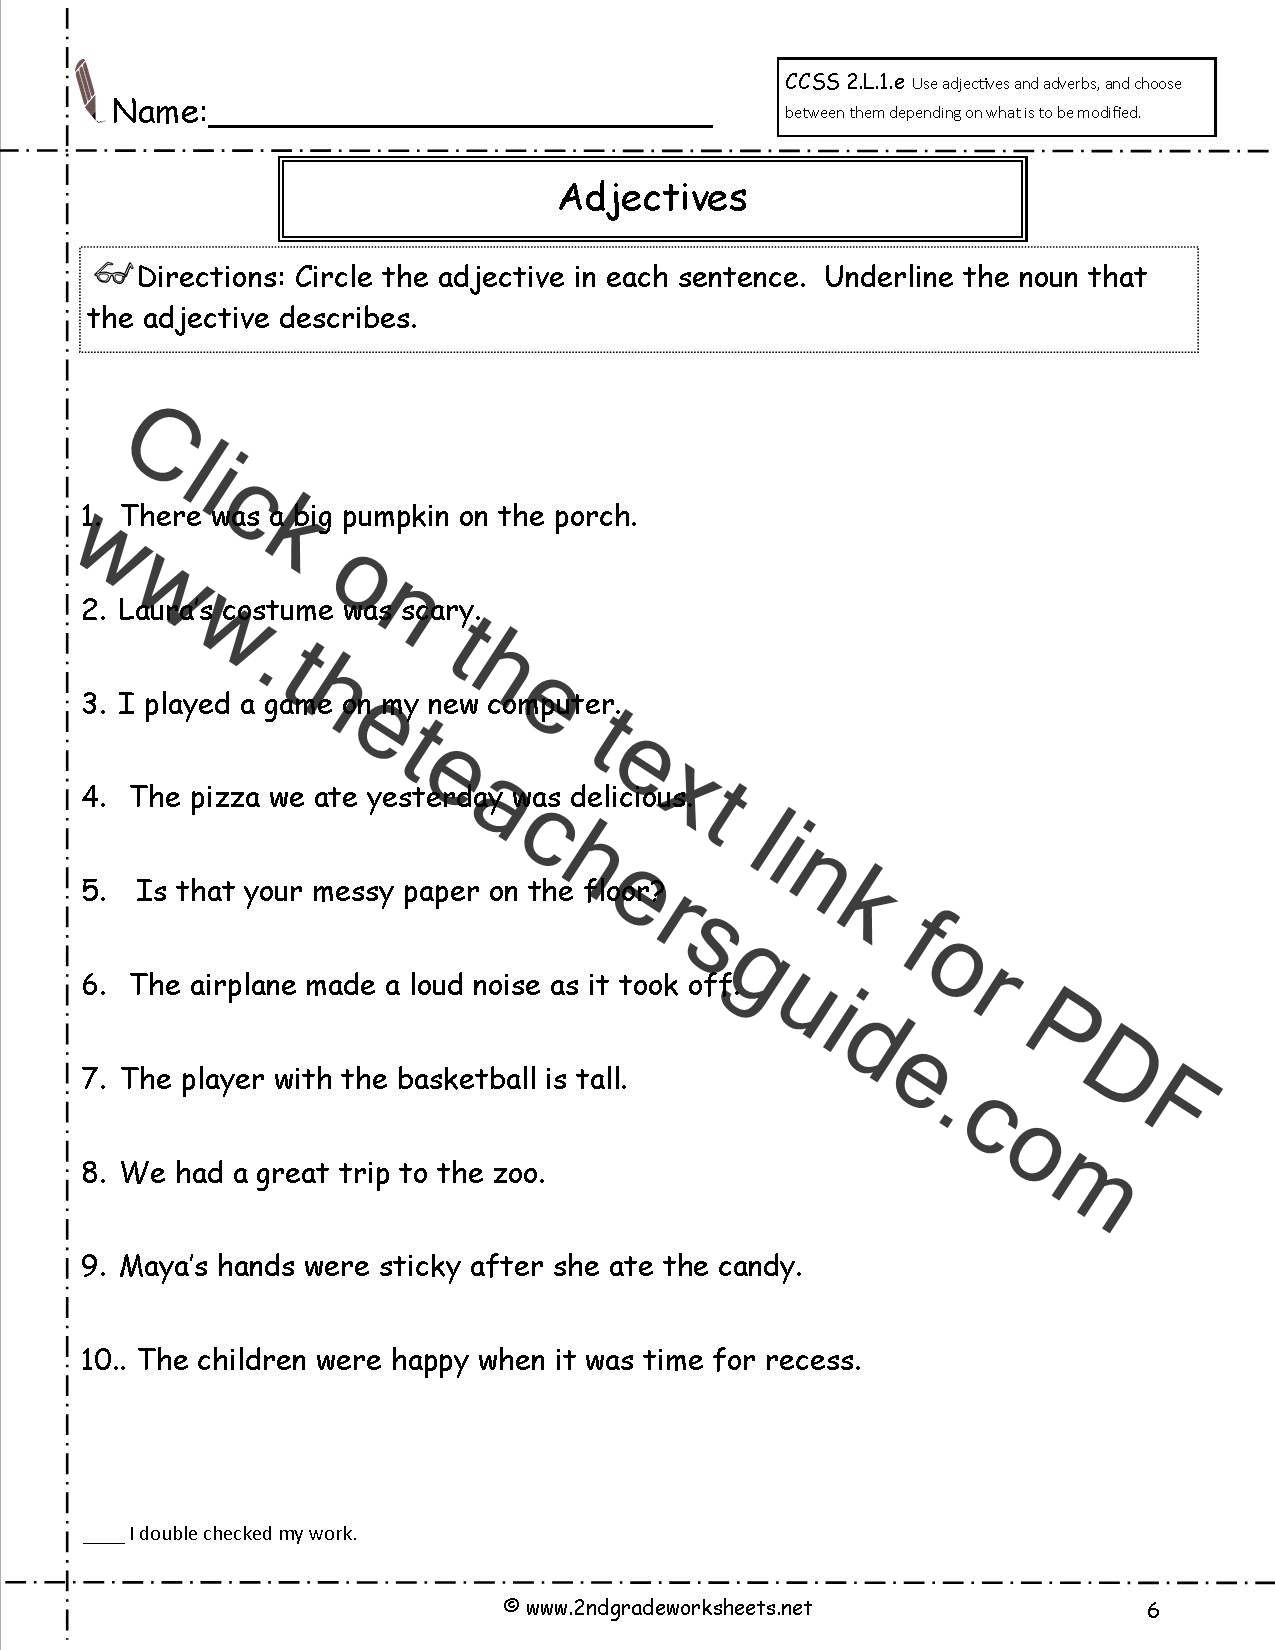 Worksheets Adjectives Worksheets free using adjectives and adverbs worksheets worksheet